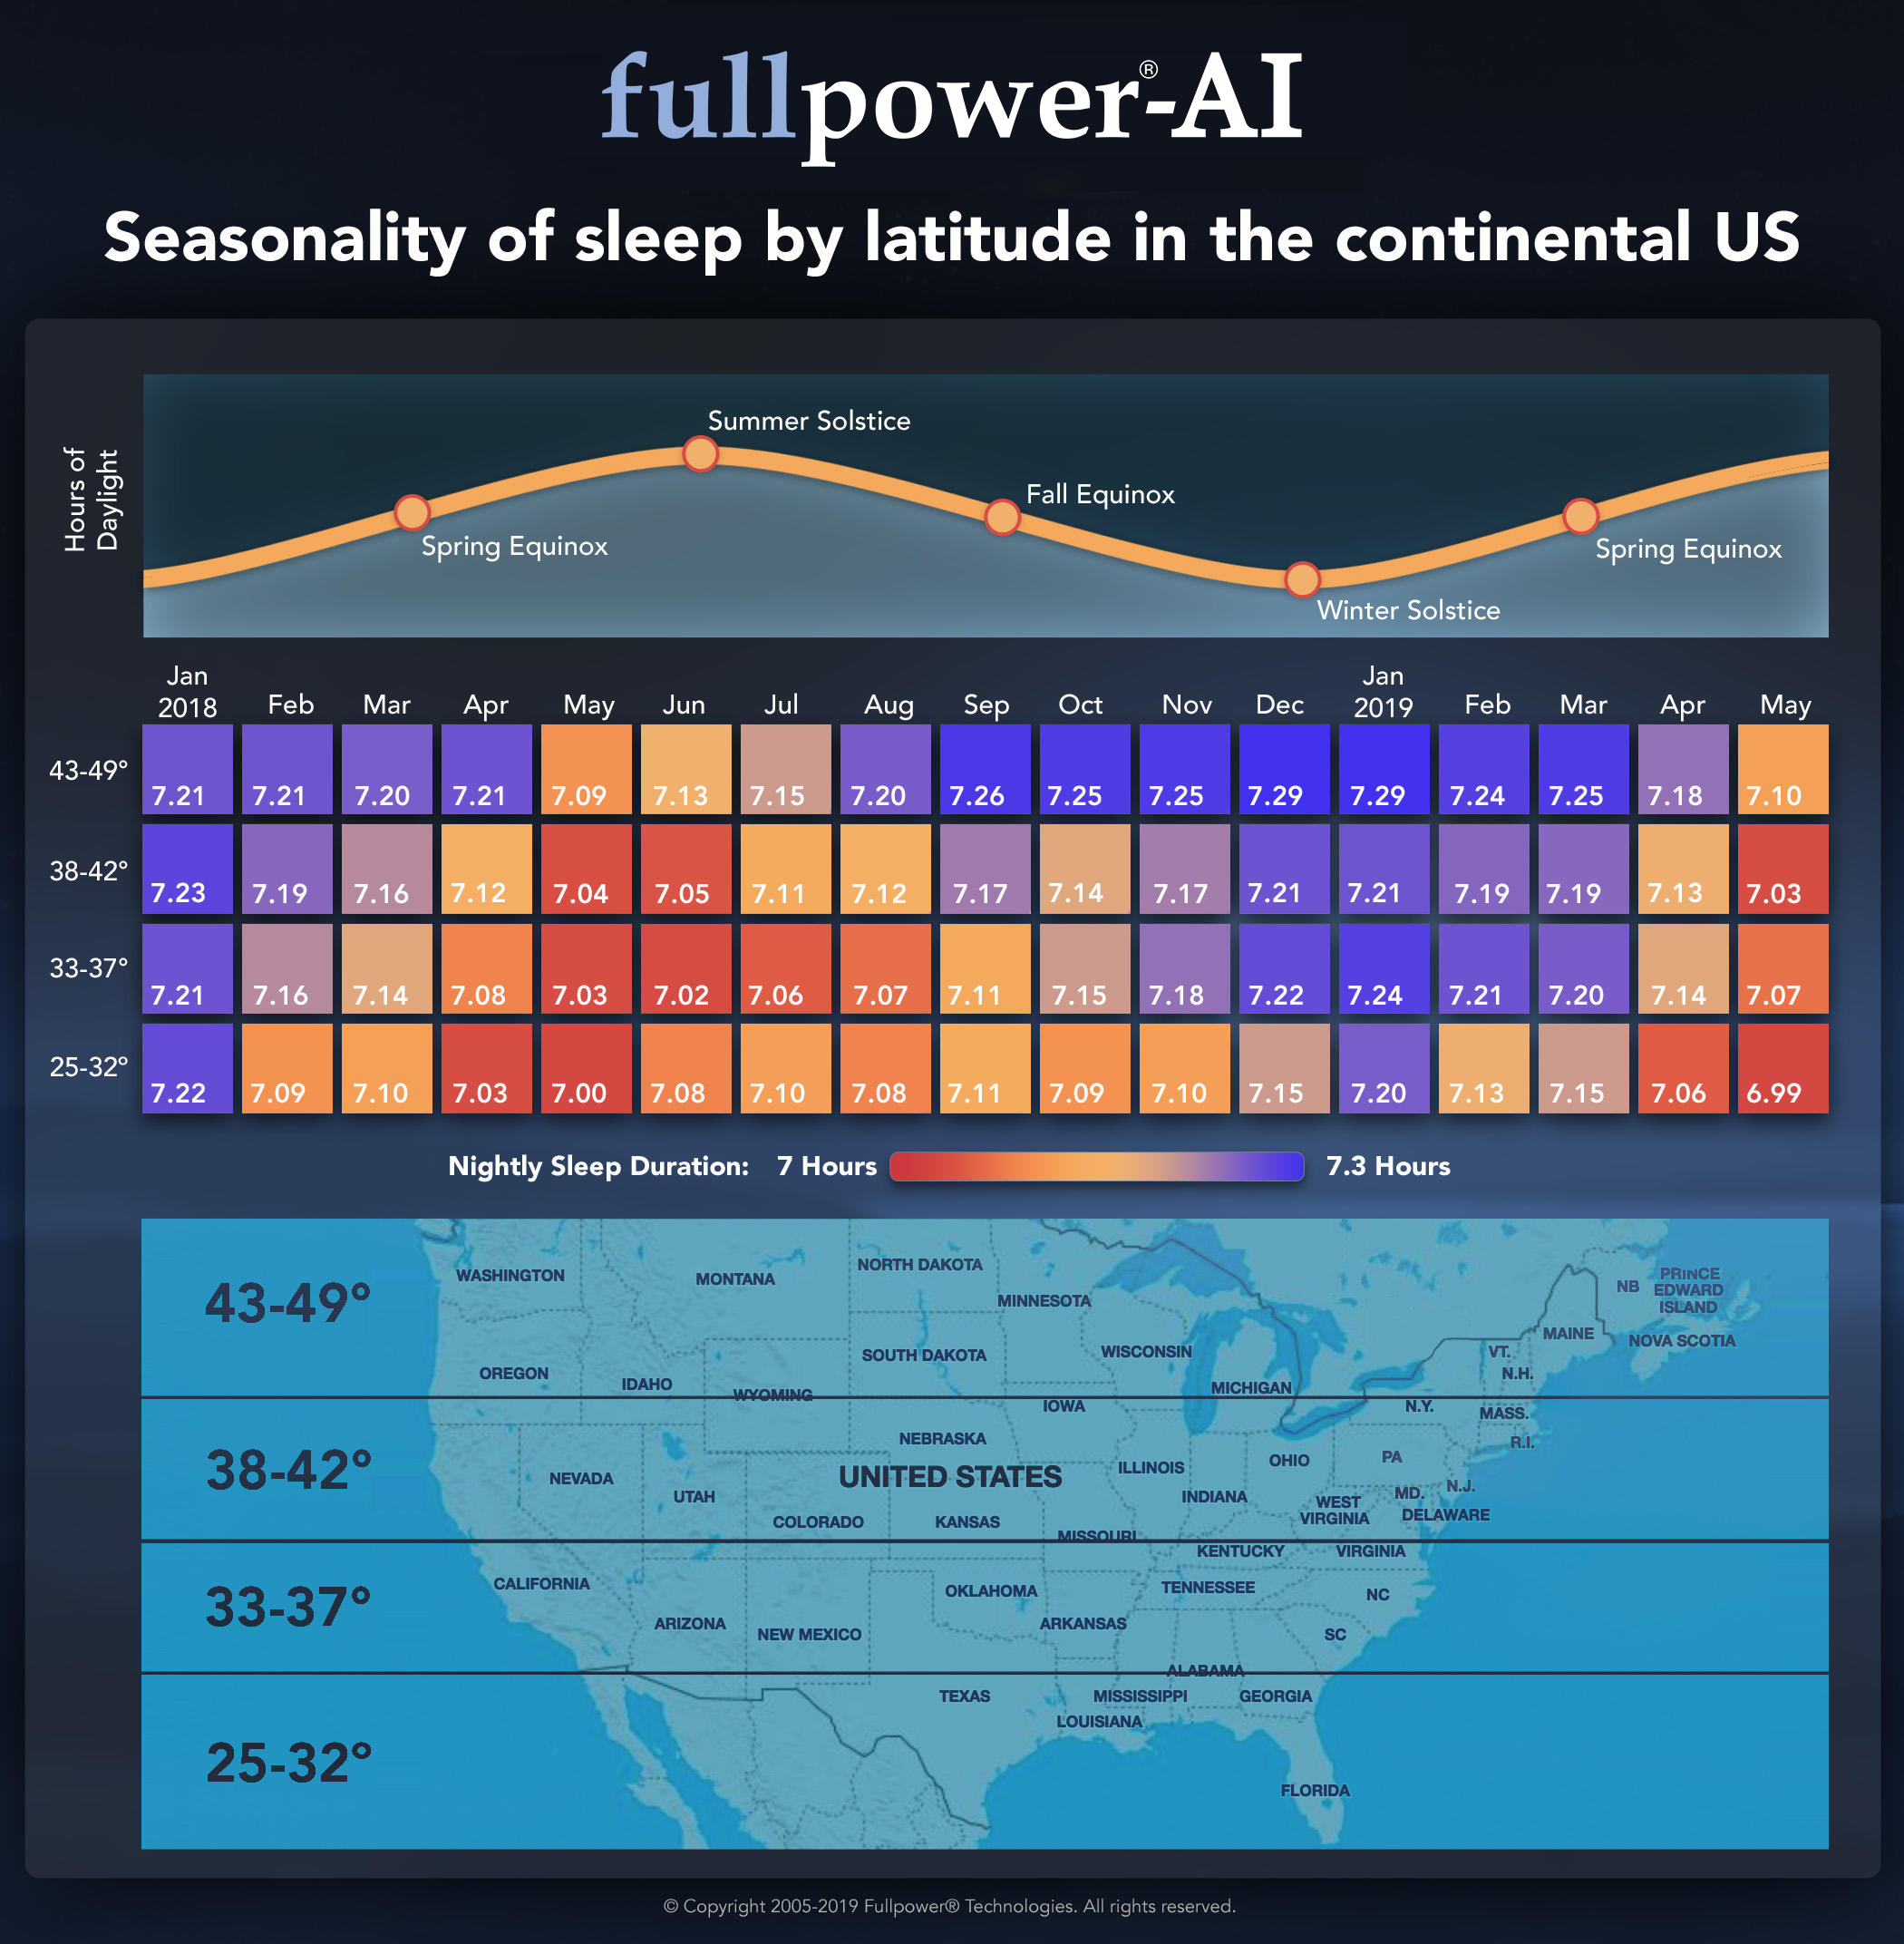 seasonality-of-sleep-by-latitude-in-the-continental-us